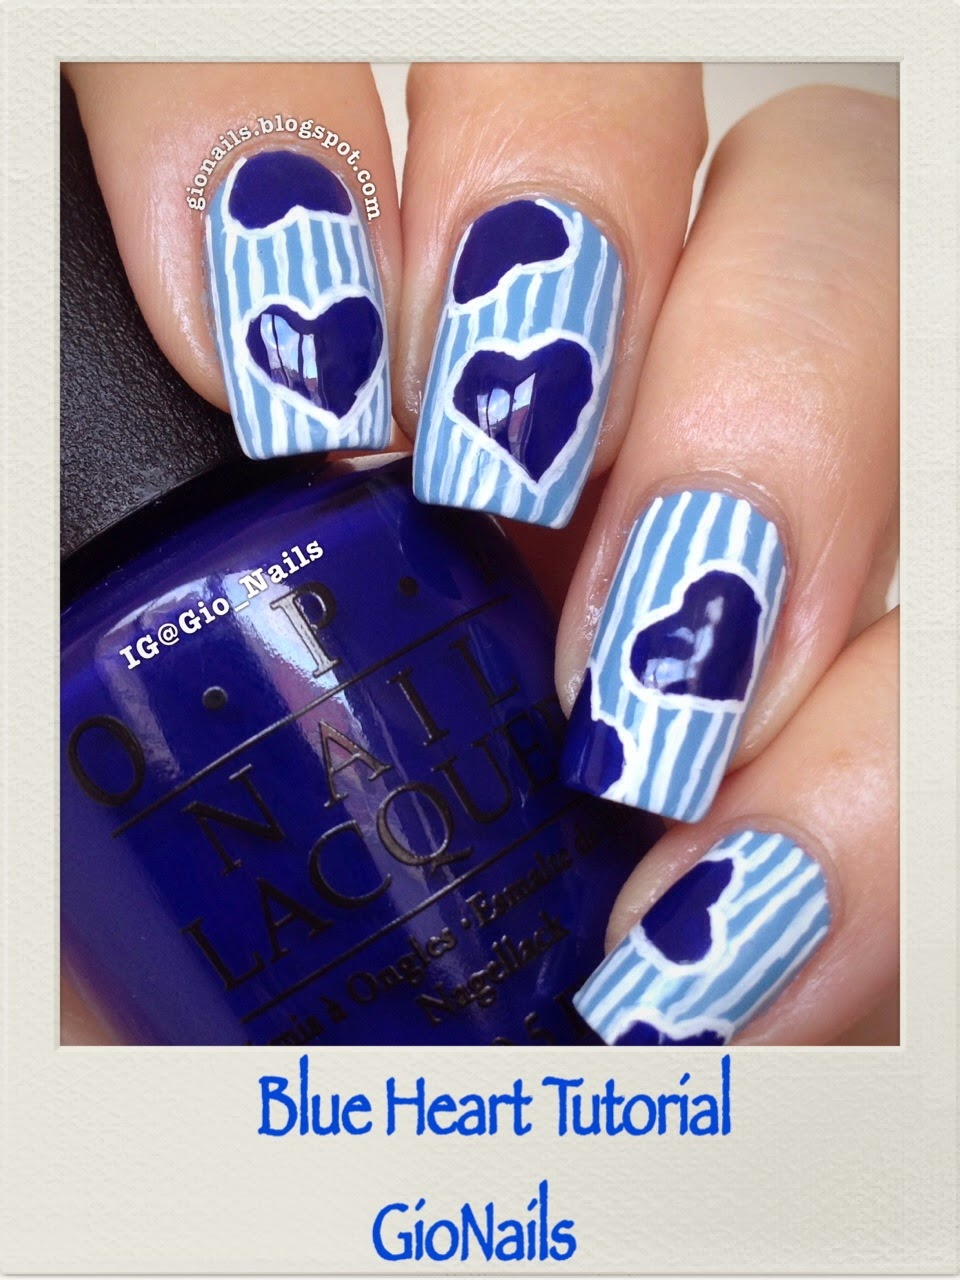 http://gionails.blogspot.be/2014/03/tutorial-blue-heart.html